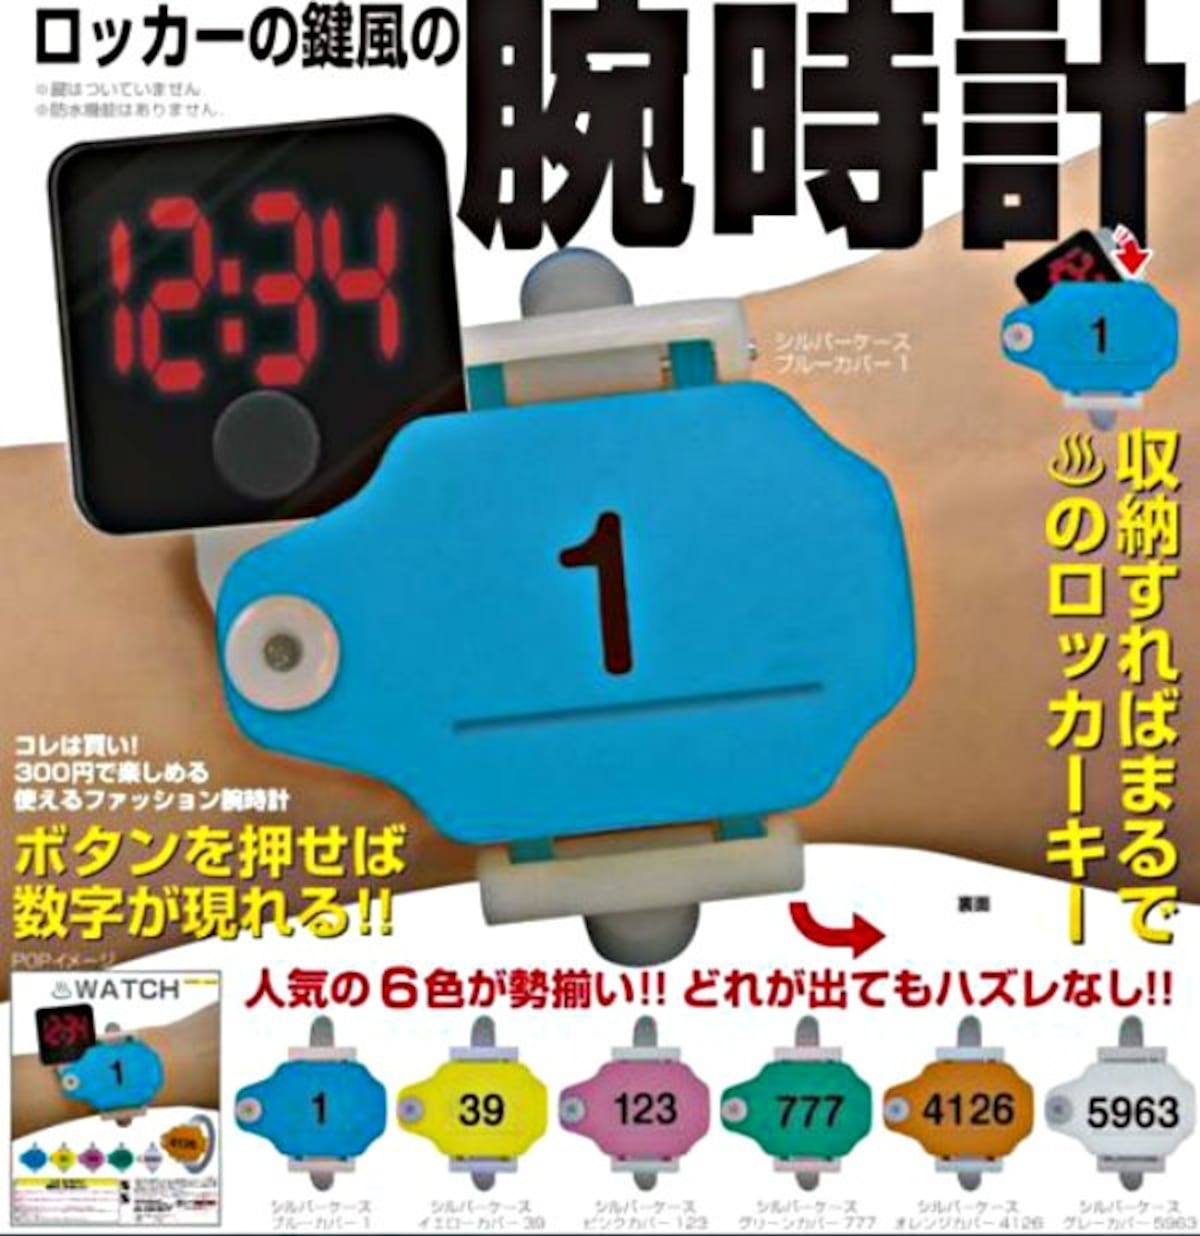 7. Locker Key Wrist Watches (¥300 [US$2.50], release month: April)